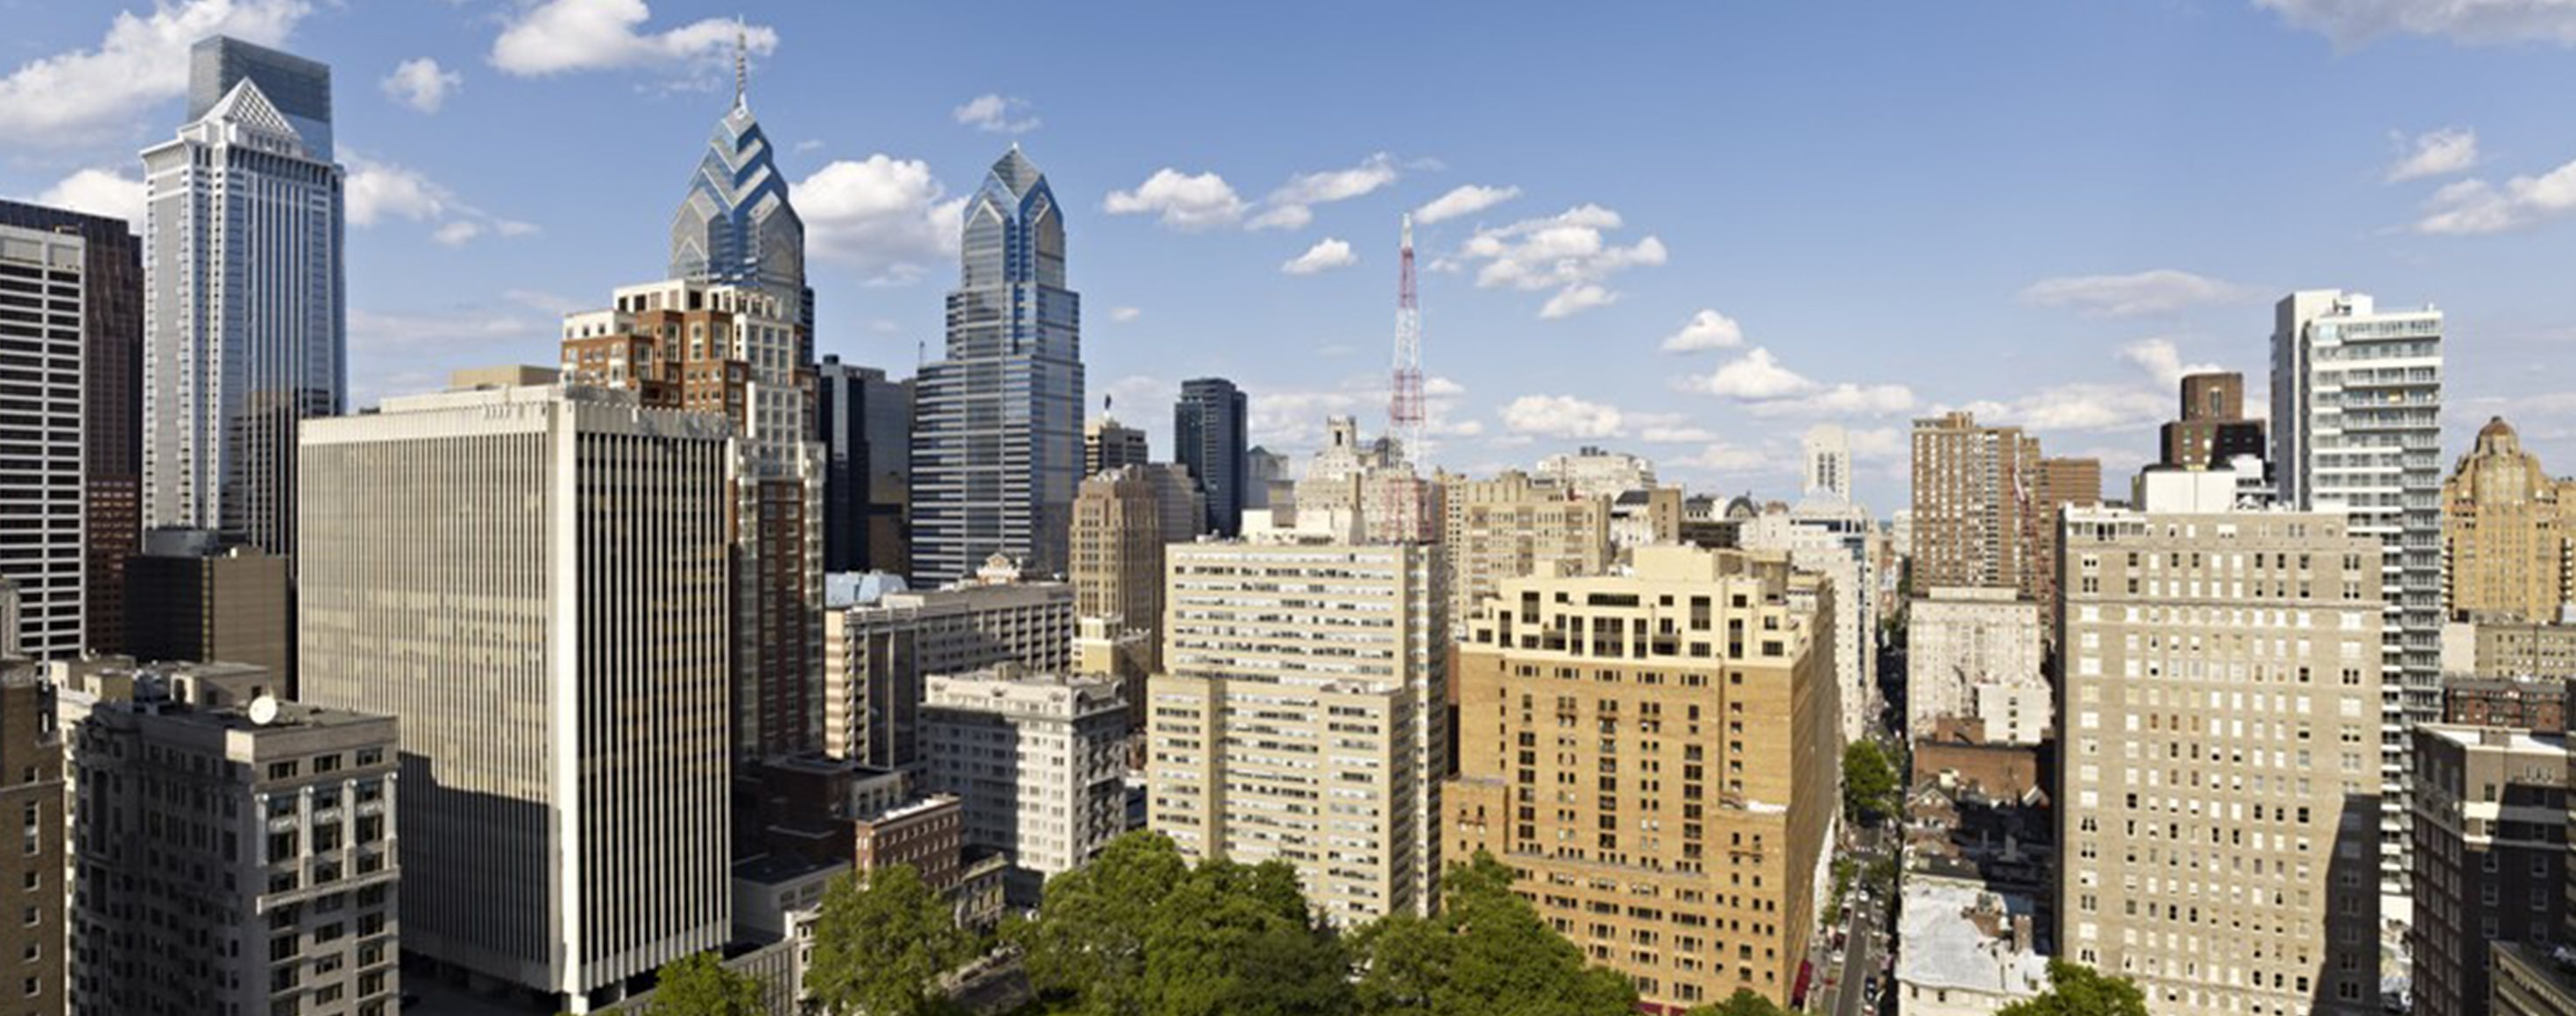 222 Rittenhouse skyline views